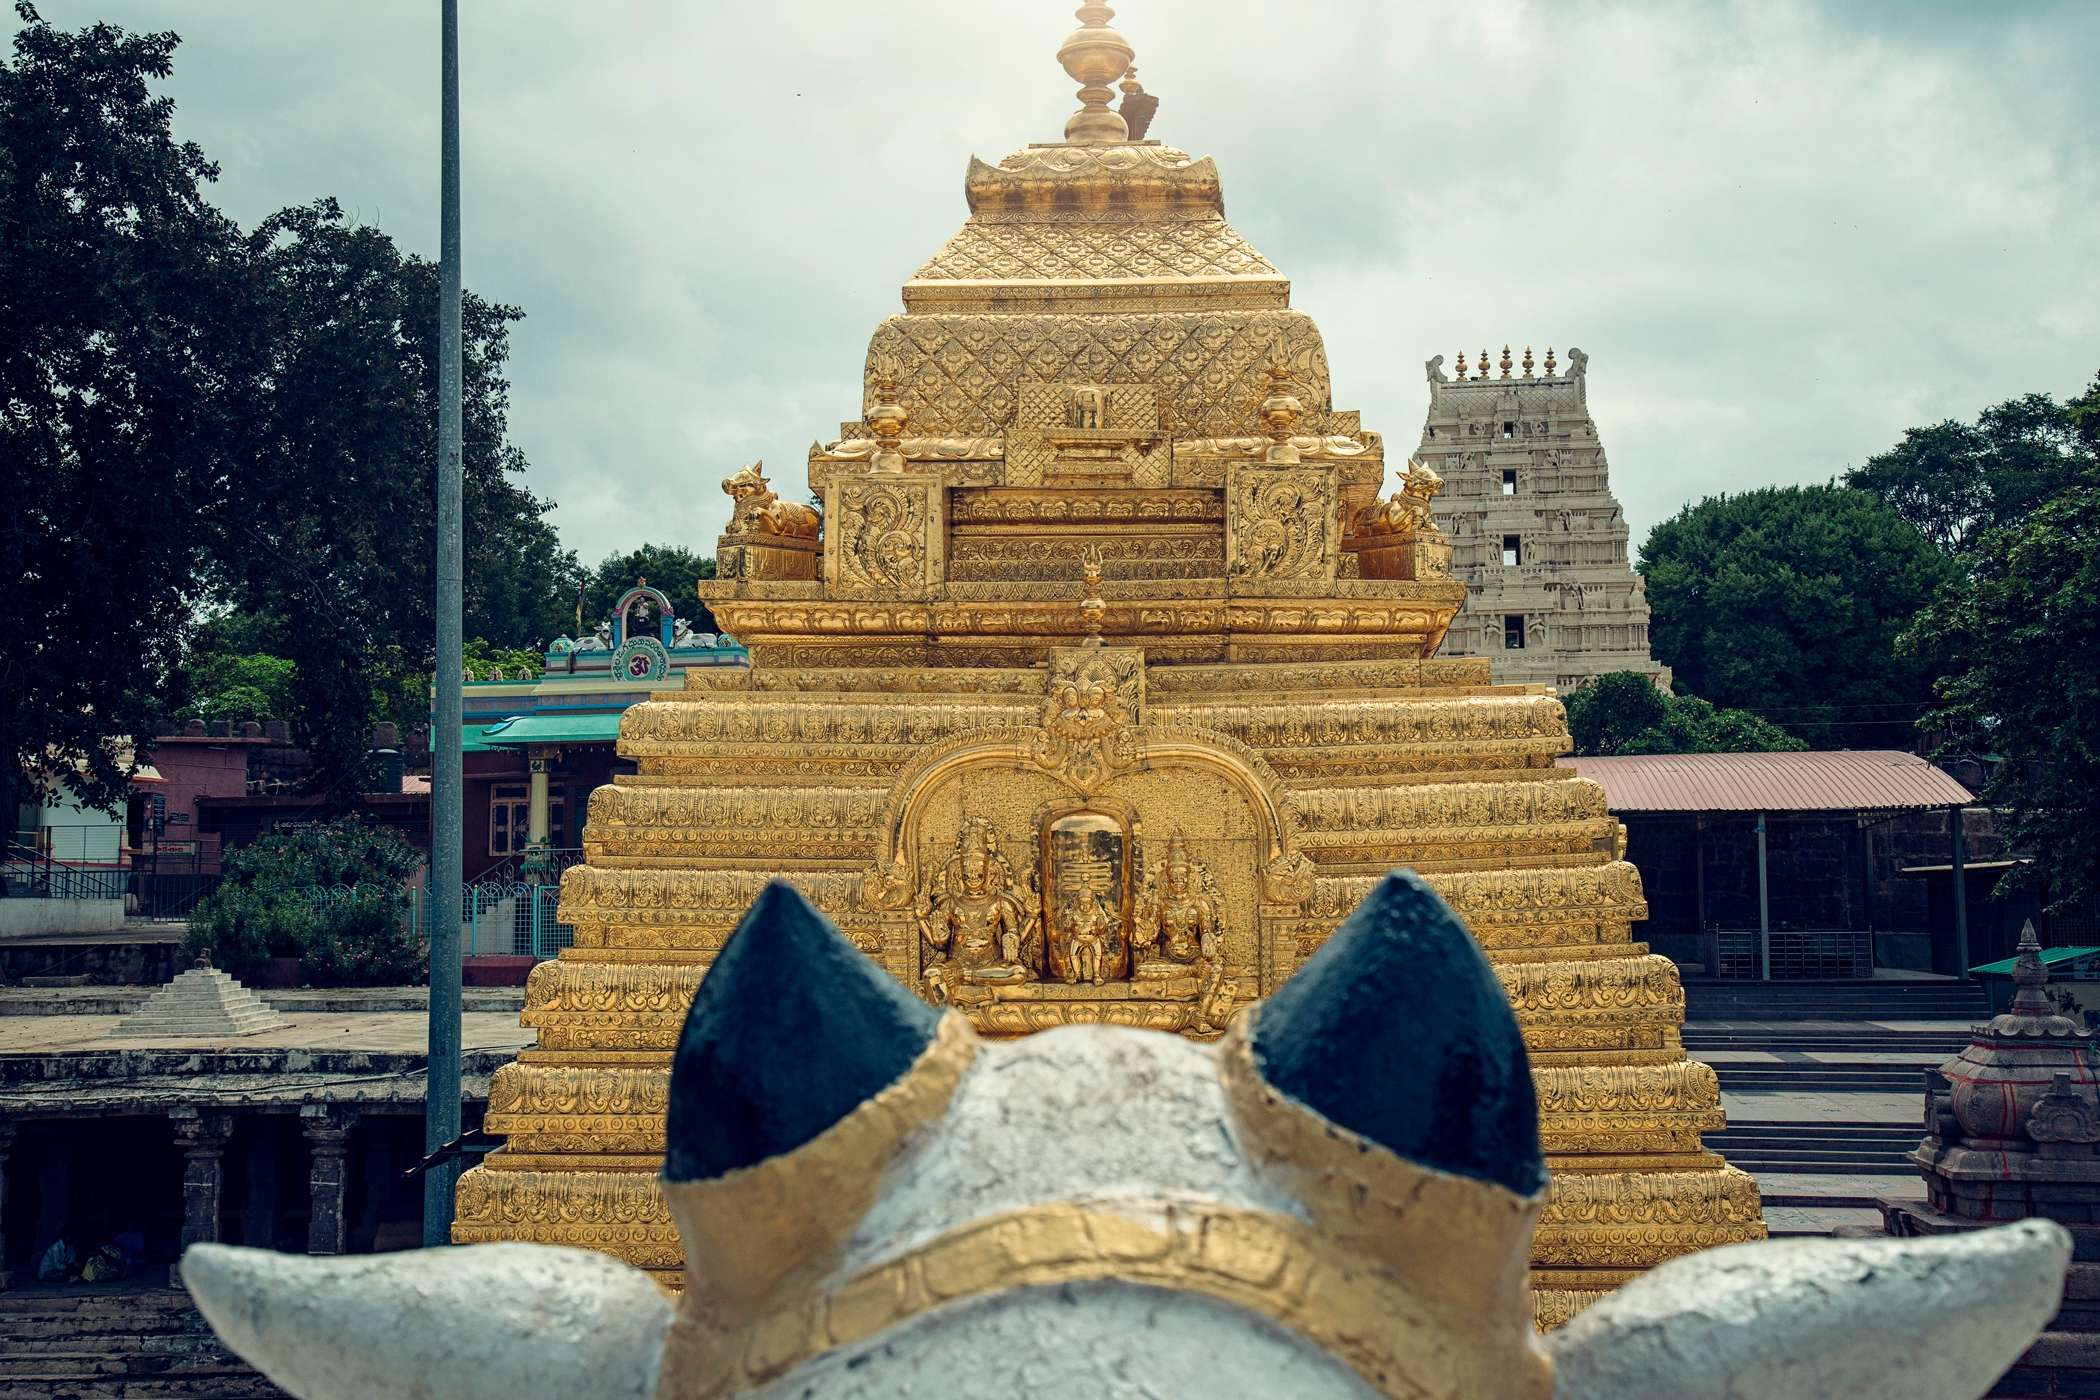 Mallikarjuna Jyotirlinga and Saktipeeth in Srisailam